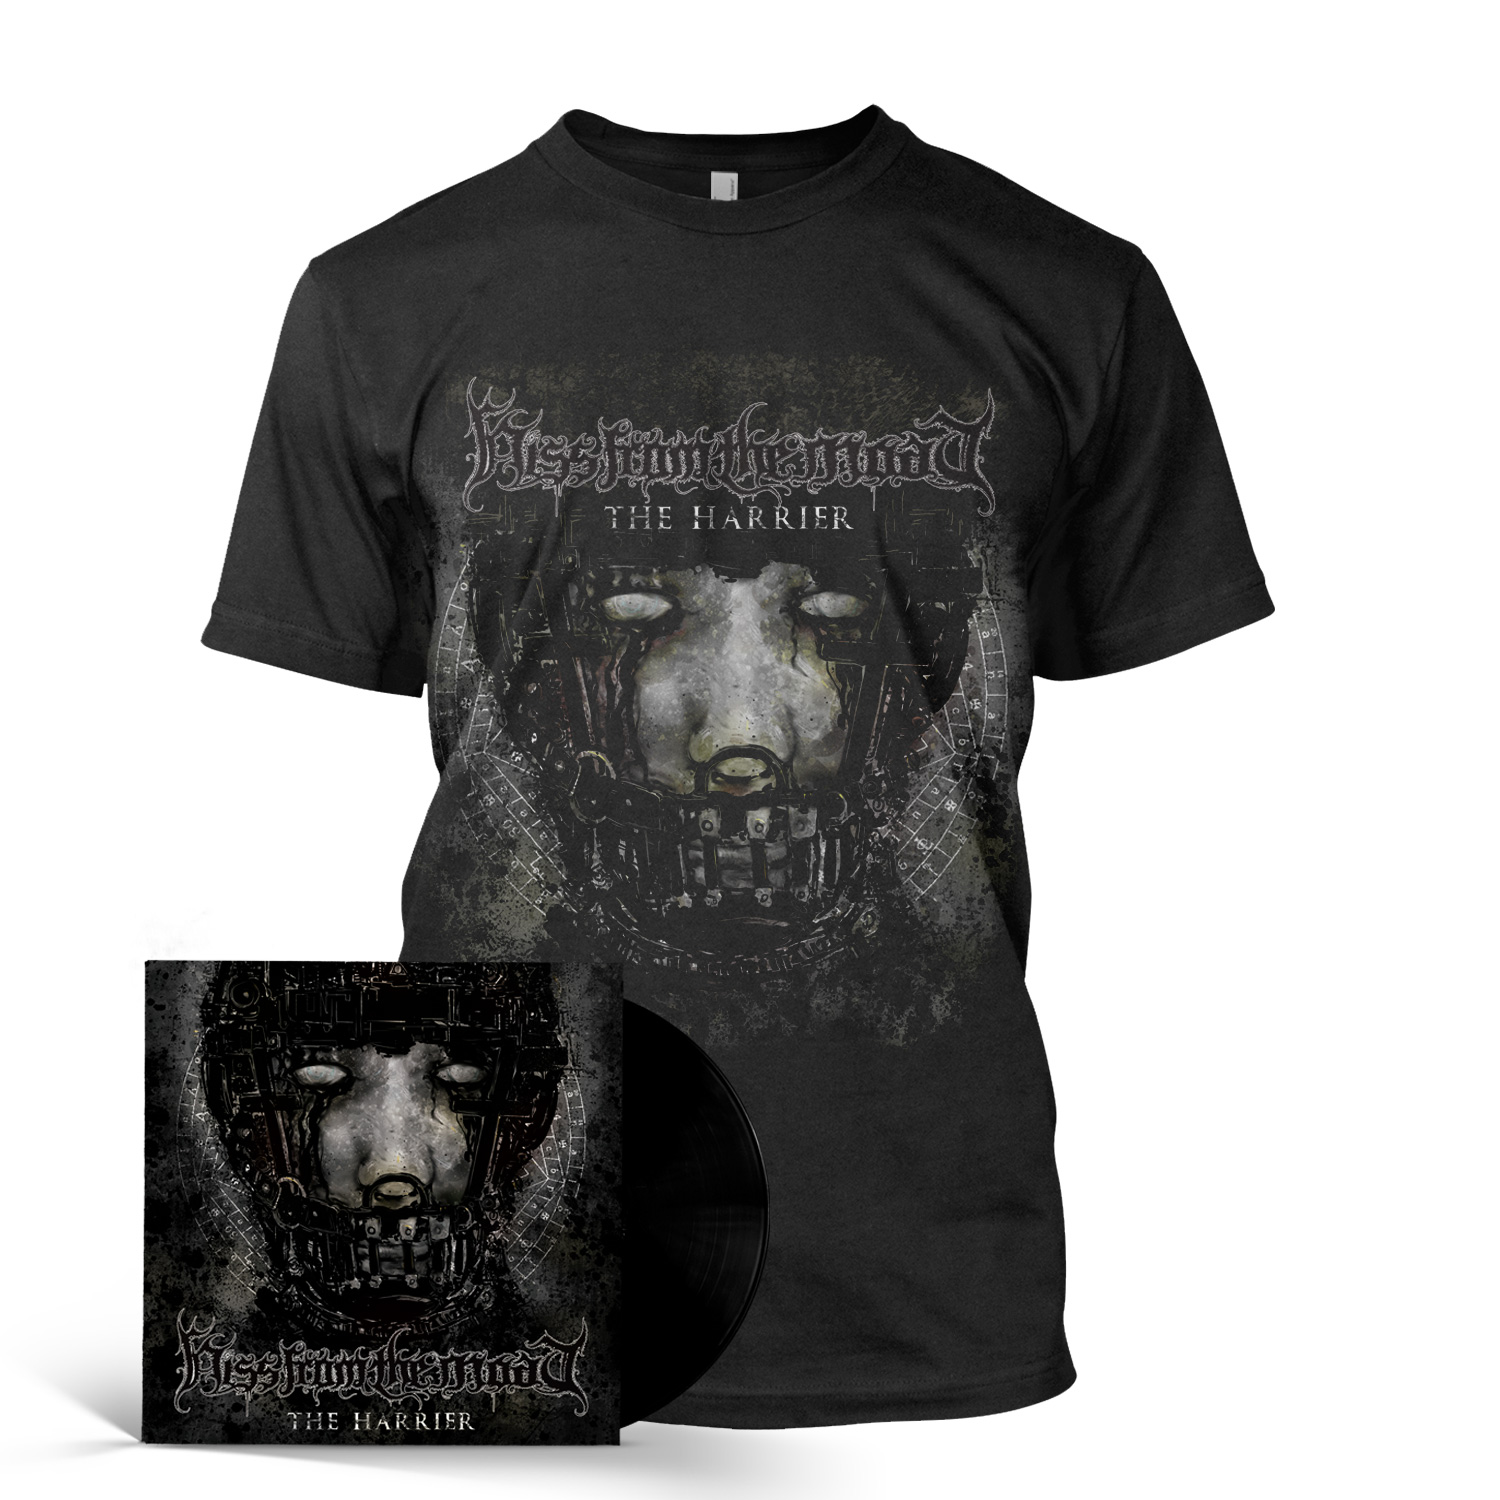 The Harrier – Vinyl + Tee Bundle